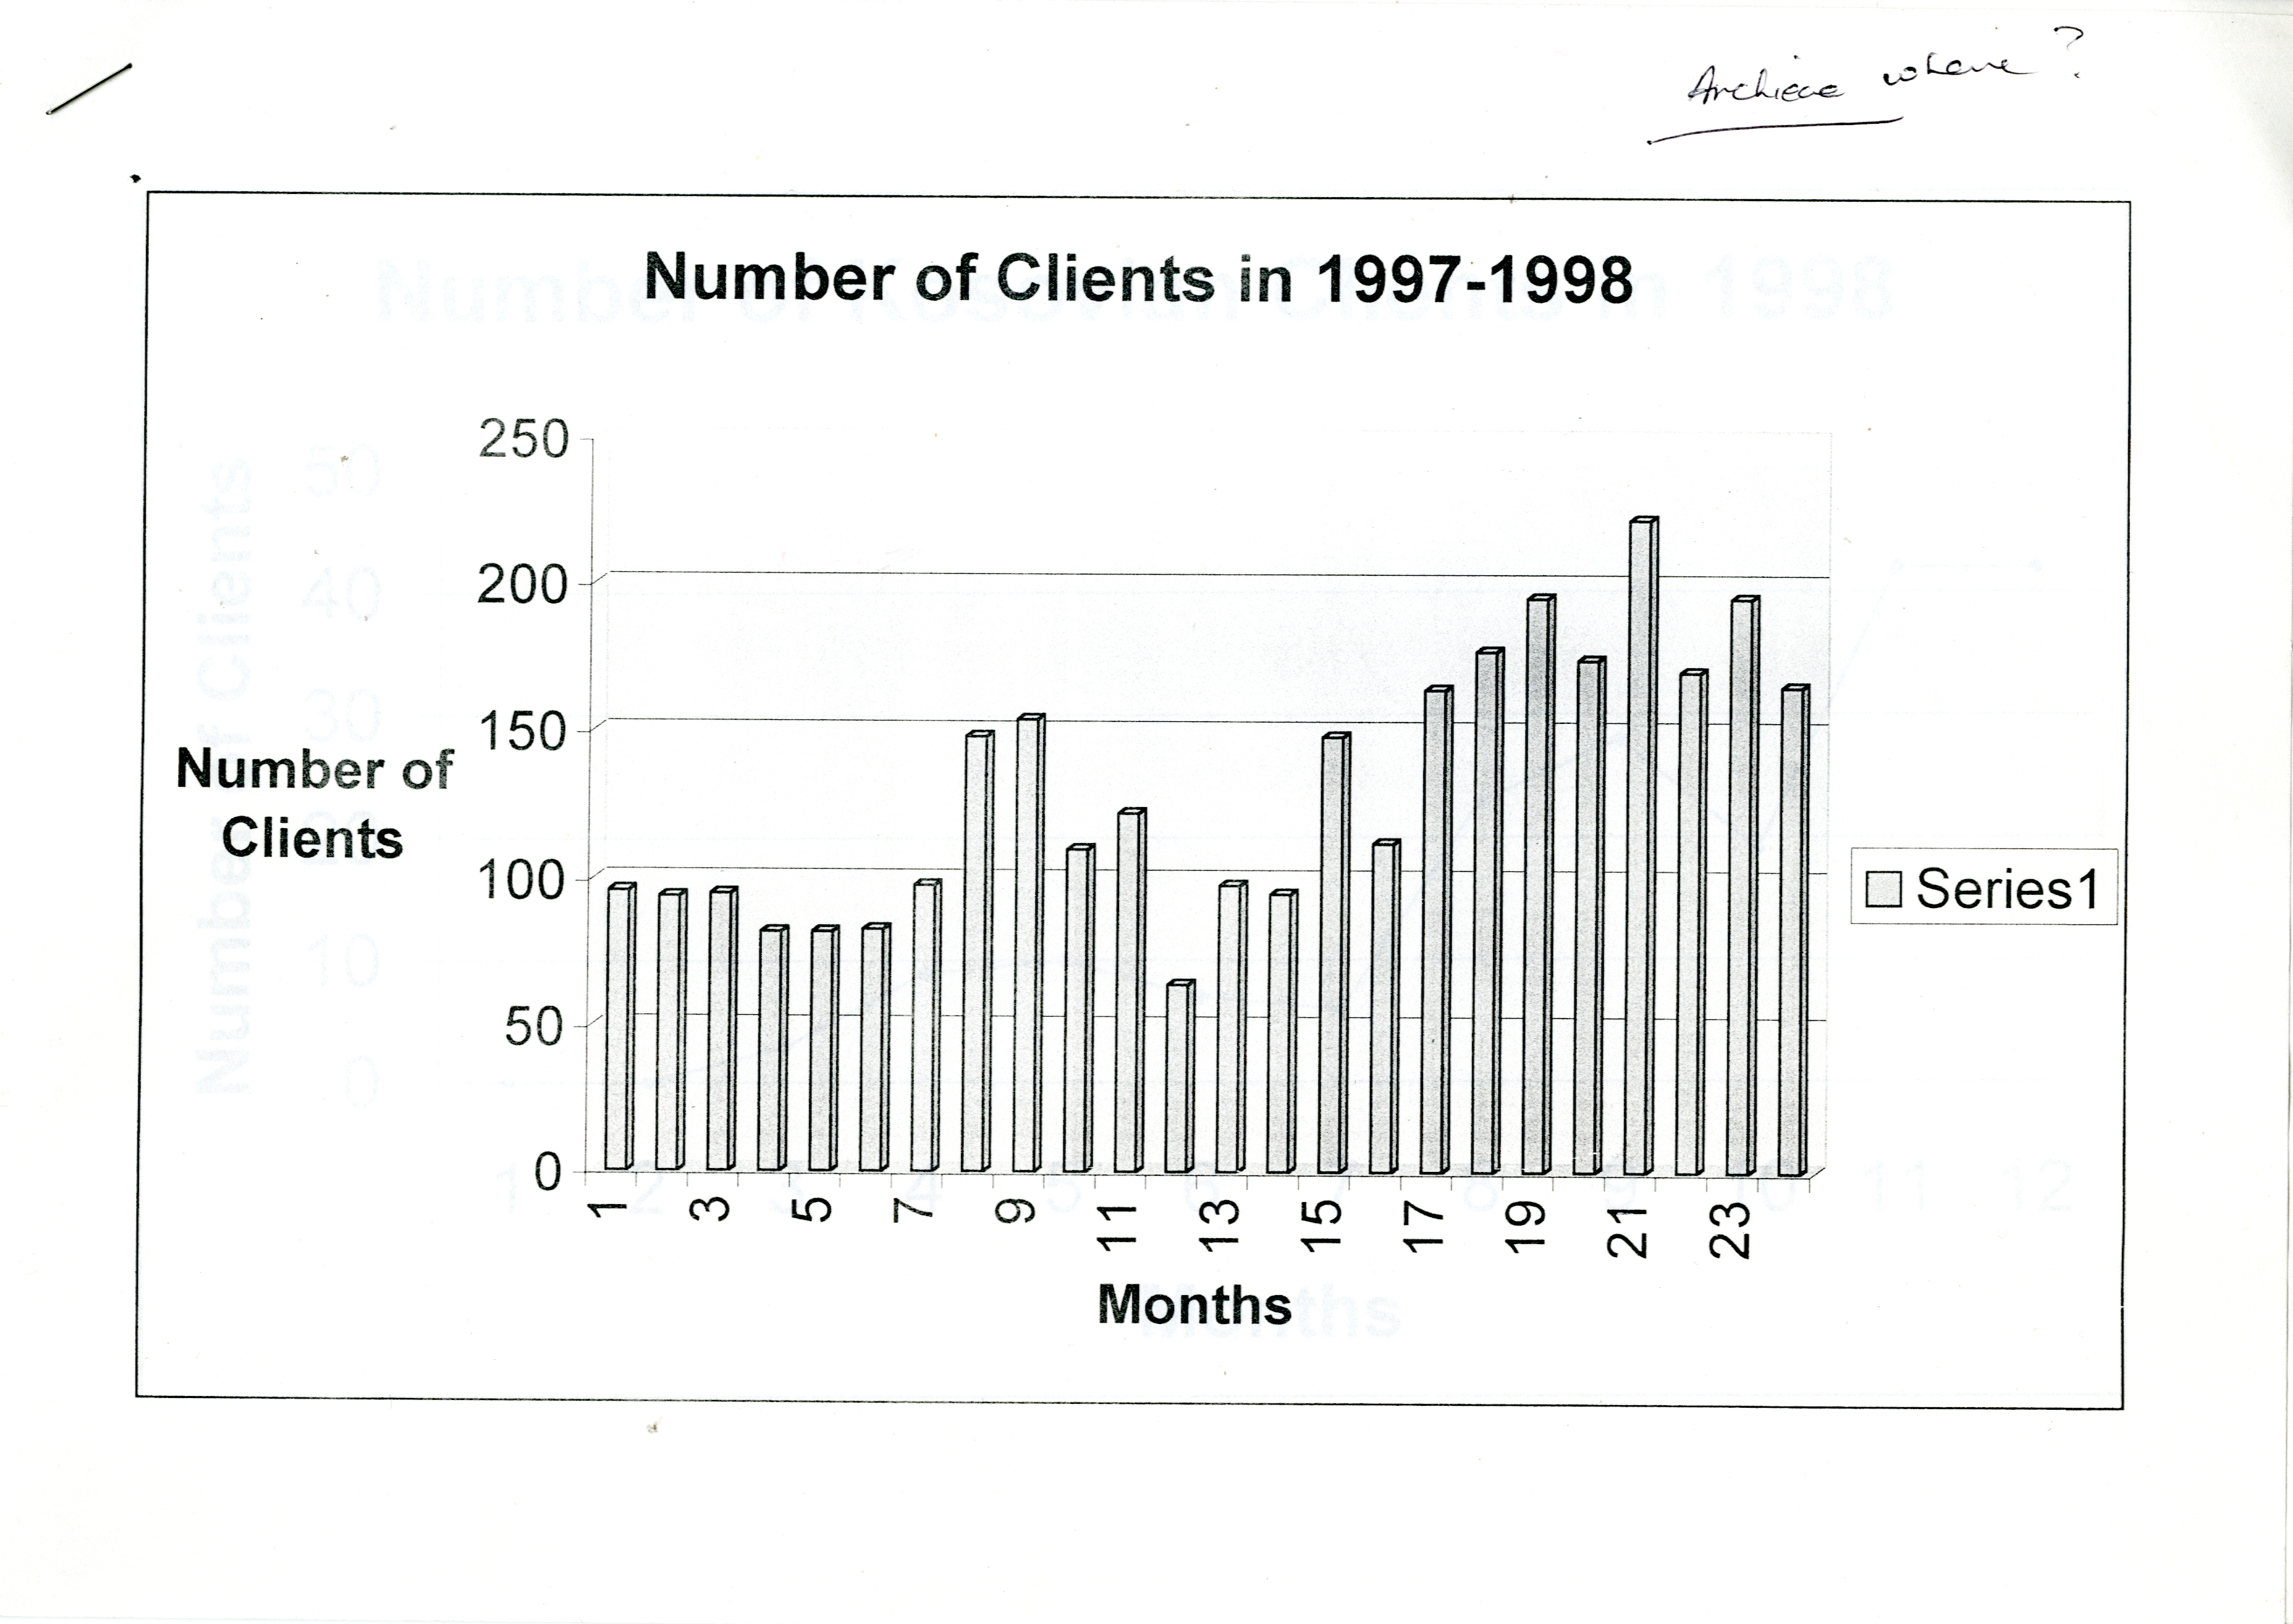 Number of clients 97-98